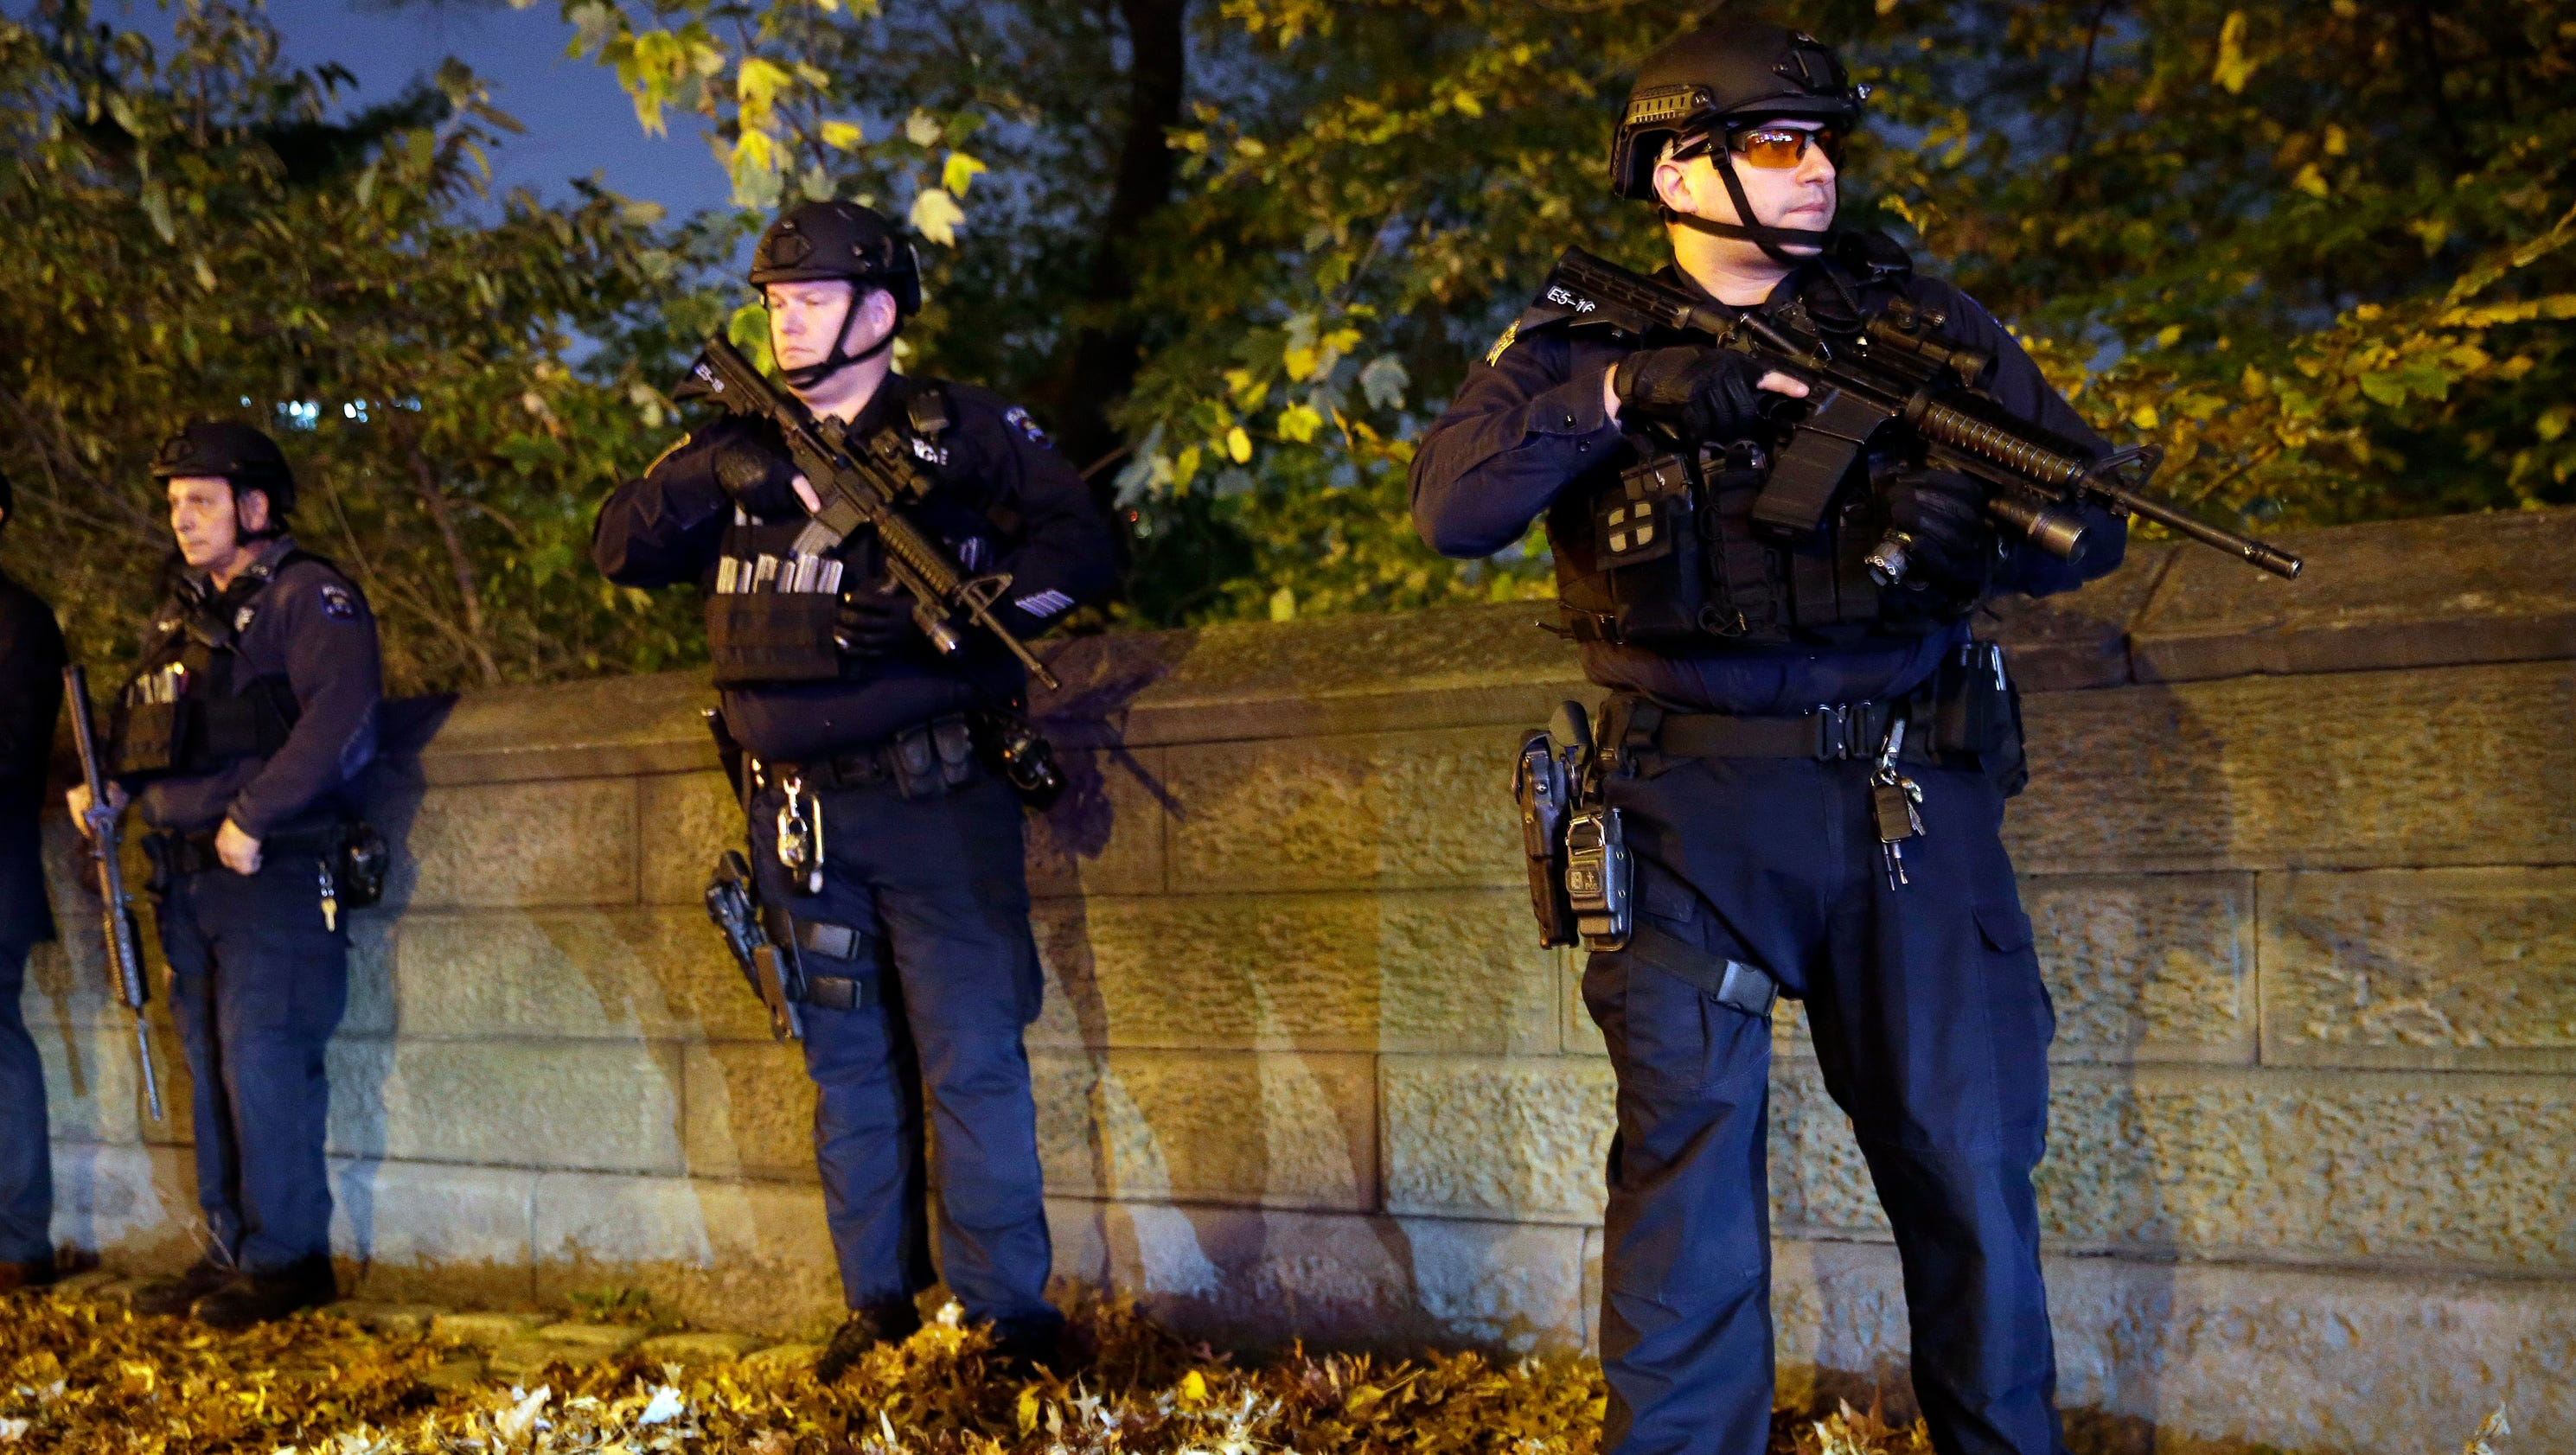 u s cities step up security in wake of paris attacks. Black Bedroom Furniture Sets. Home Design Ideas